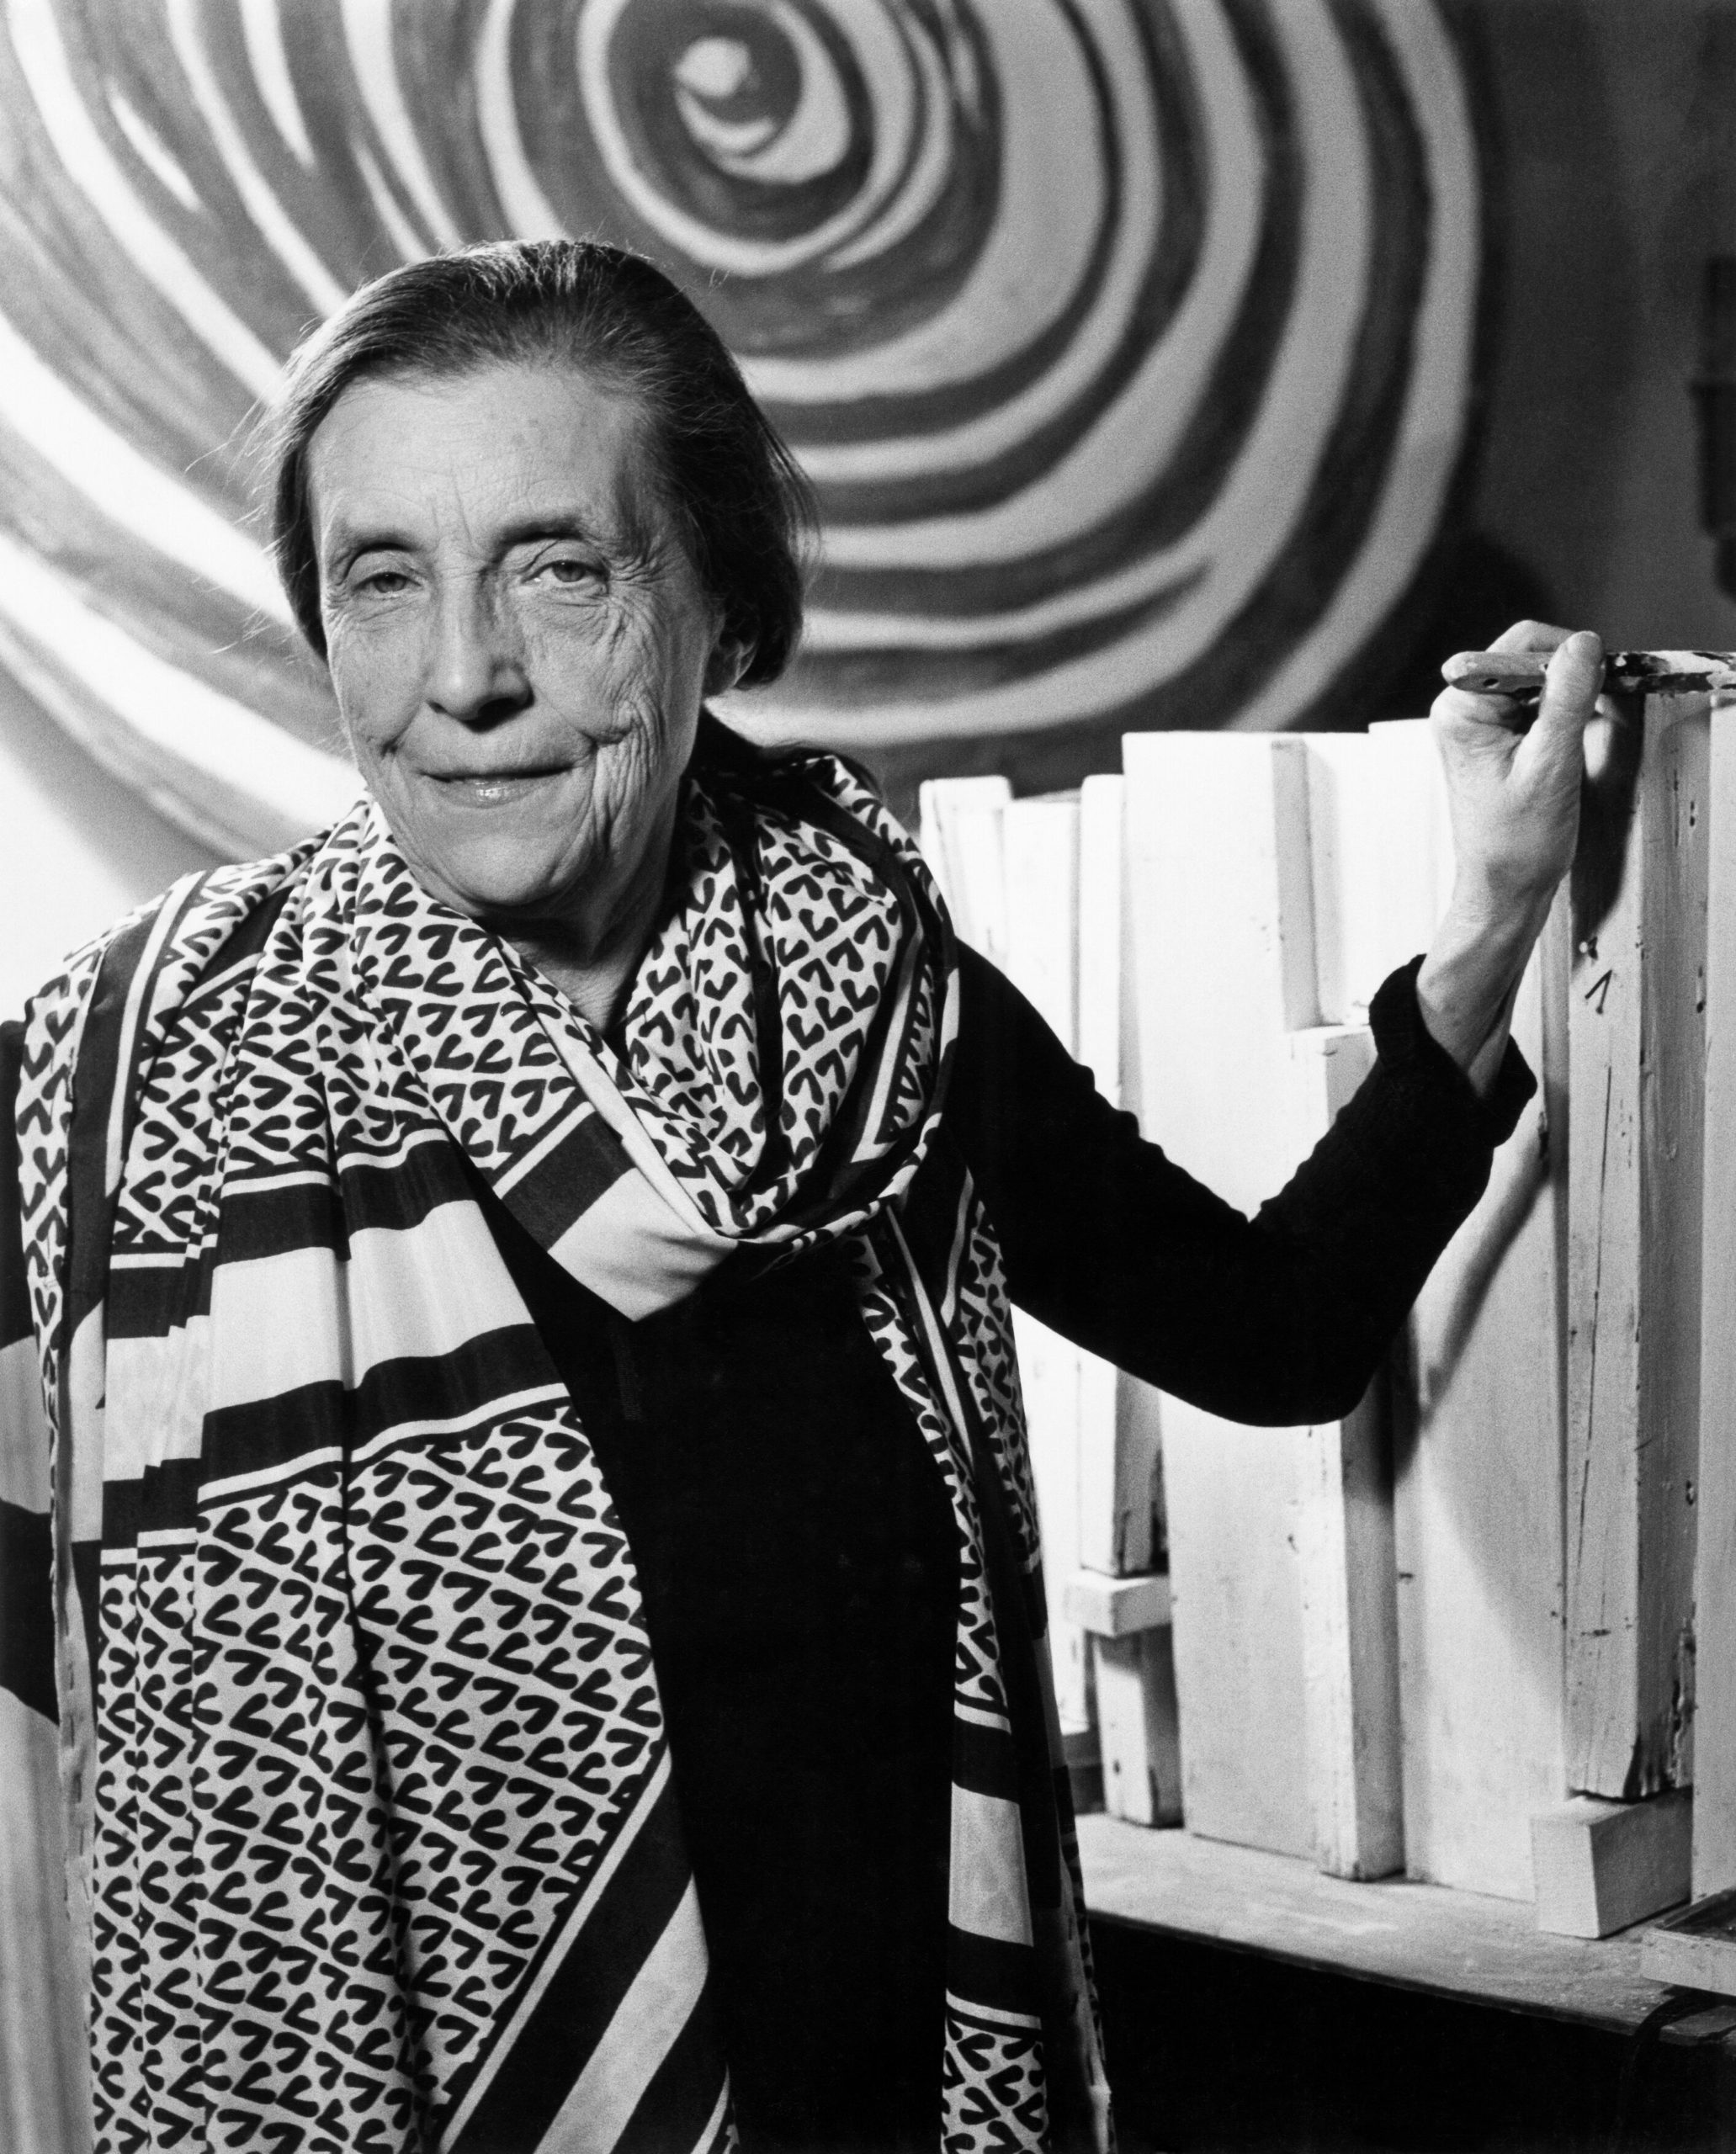 BOURGEOIS LOUISE-hires-2 Louise Bourgeois in 1978. Photo: Carollee Pelos / Art © The Easton Foundation / 2020, ProLitteris, Zurich